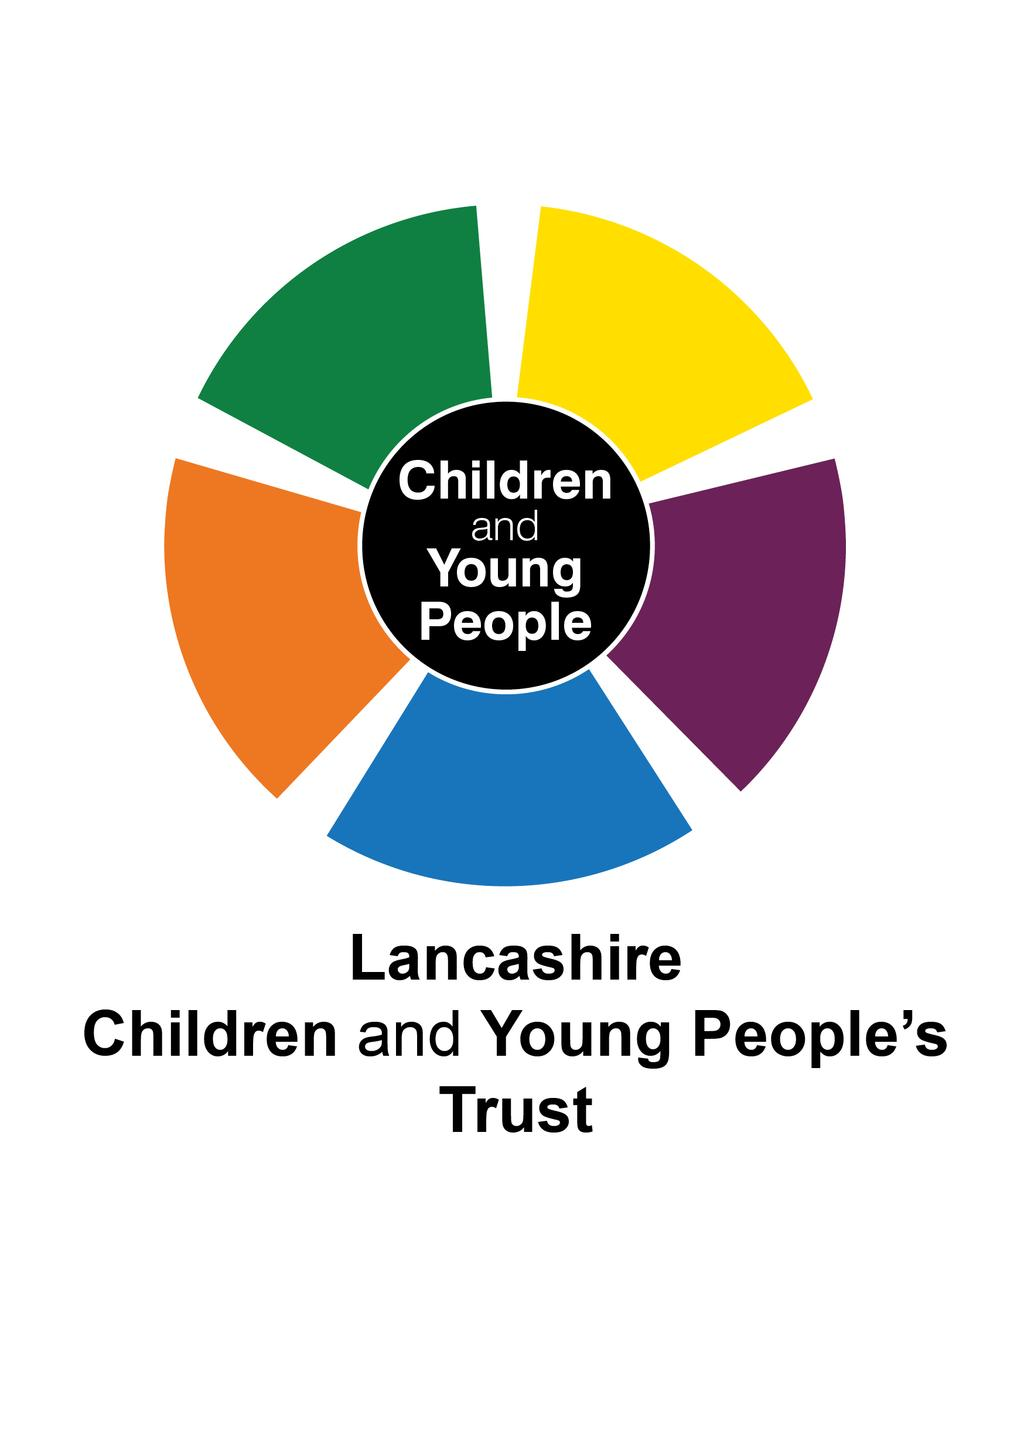 LANCASTER DISTRICT CHILDREN & YOUNG PEOPLE S TRUST BOARD NOTES OF MEETING HELD THURSDAY 3 rd OCTOBER 2013 AT LANCASTER TOWN HALL COMMITTEE ROOM B Present: Amanda Crane (AC) Partnership Officer